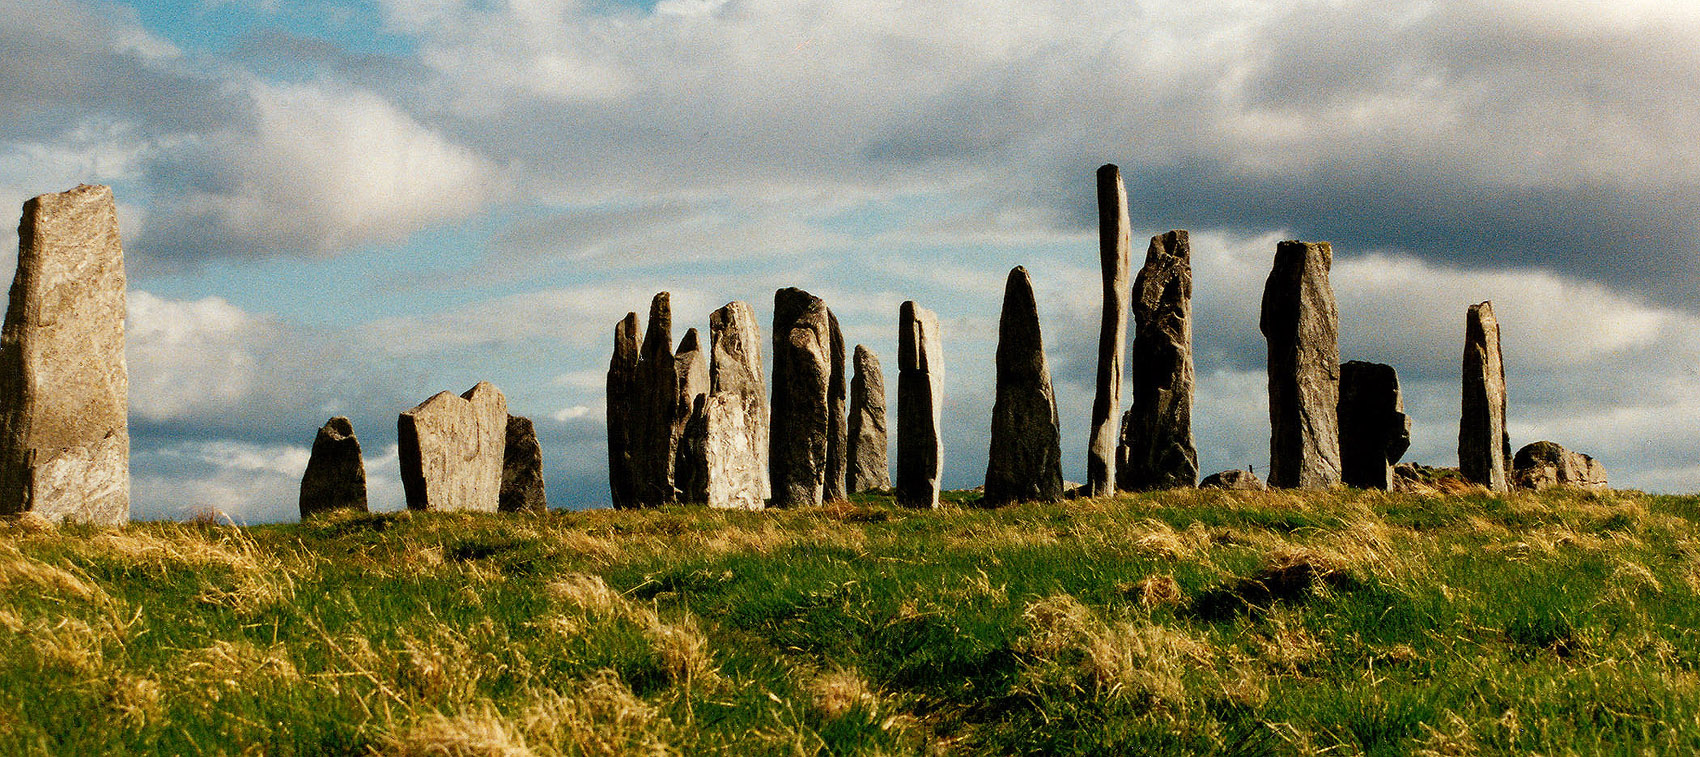 How The Legends and Beauty Of Scotland Inspired 'Brave'